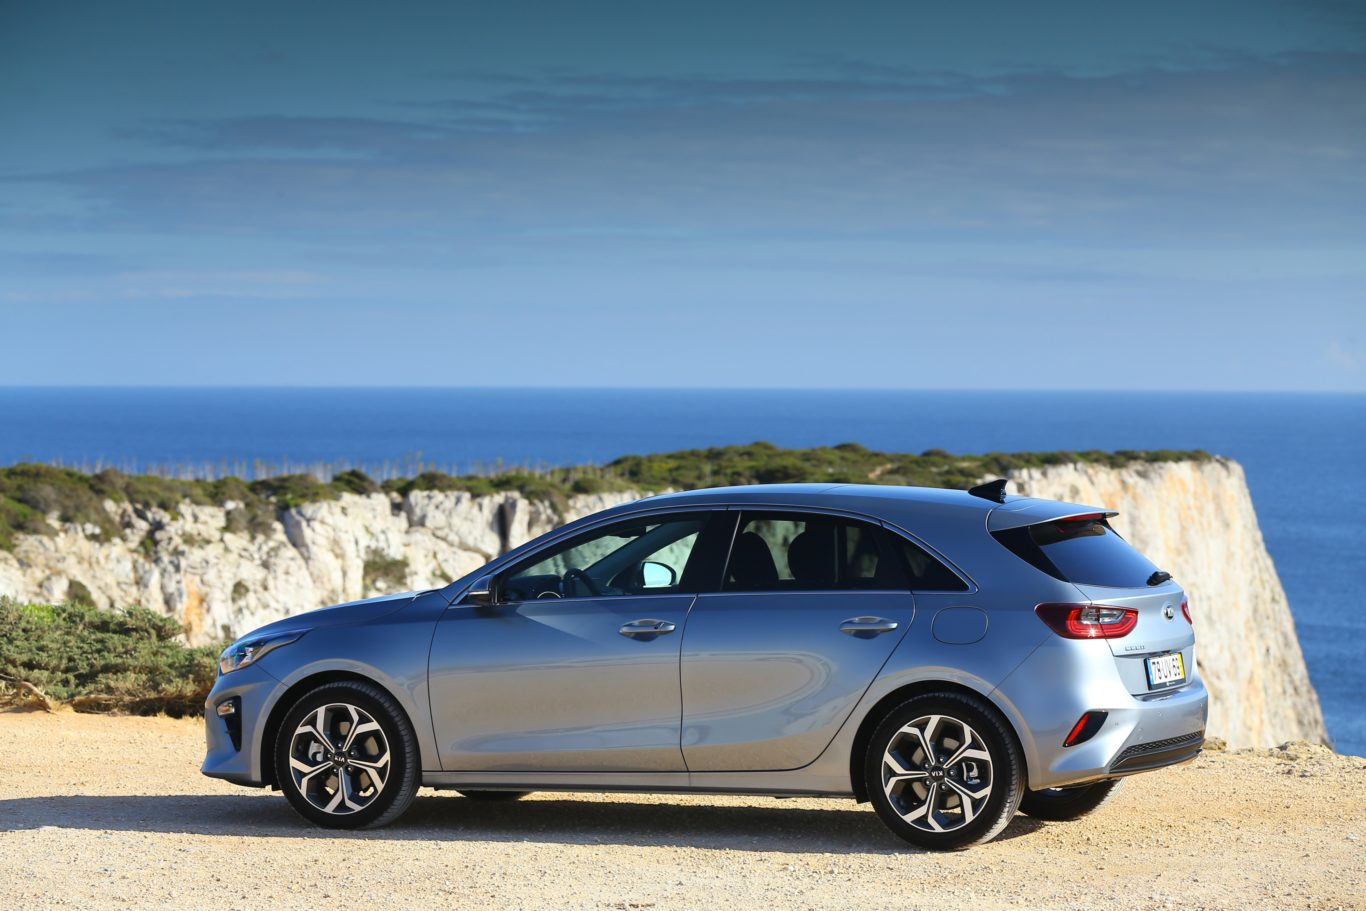 The Ceed is one of the most popular cars in Kia's range